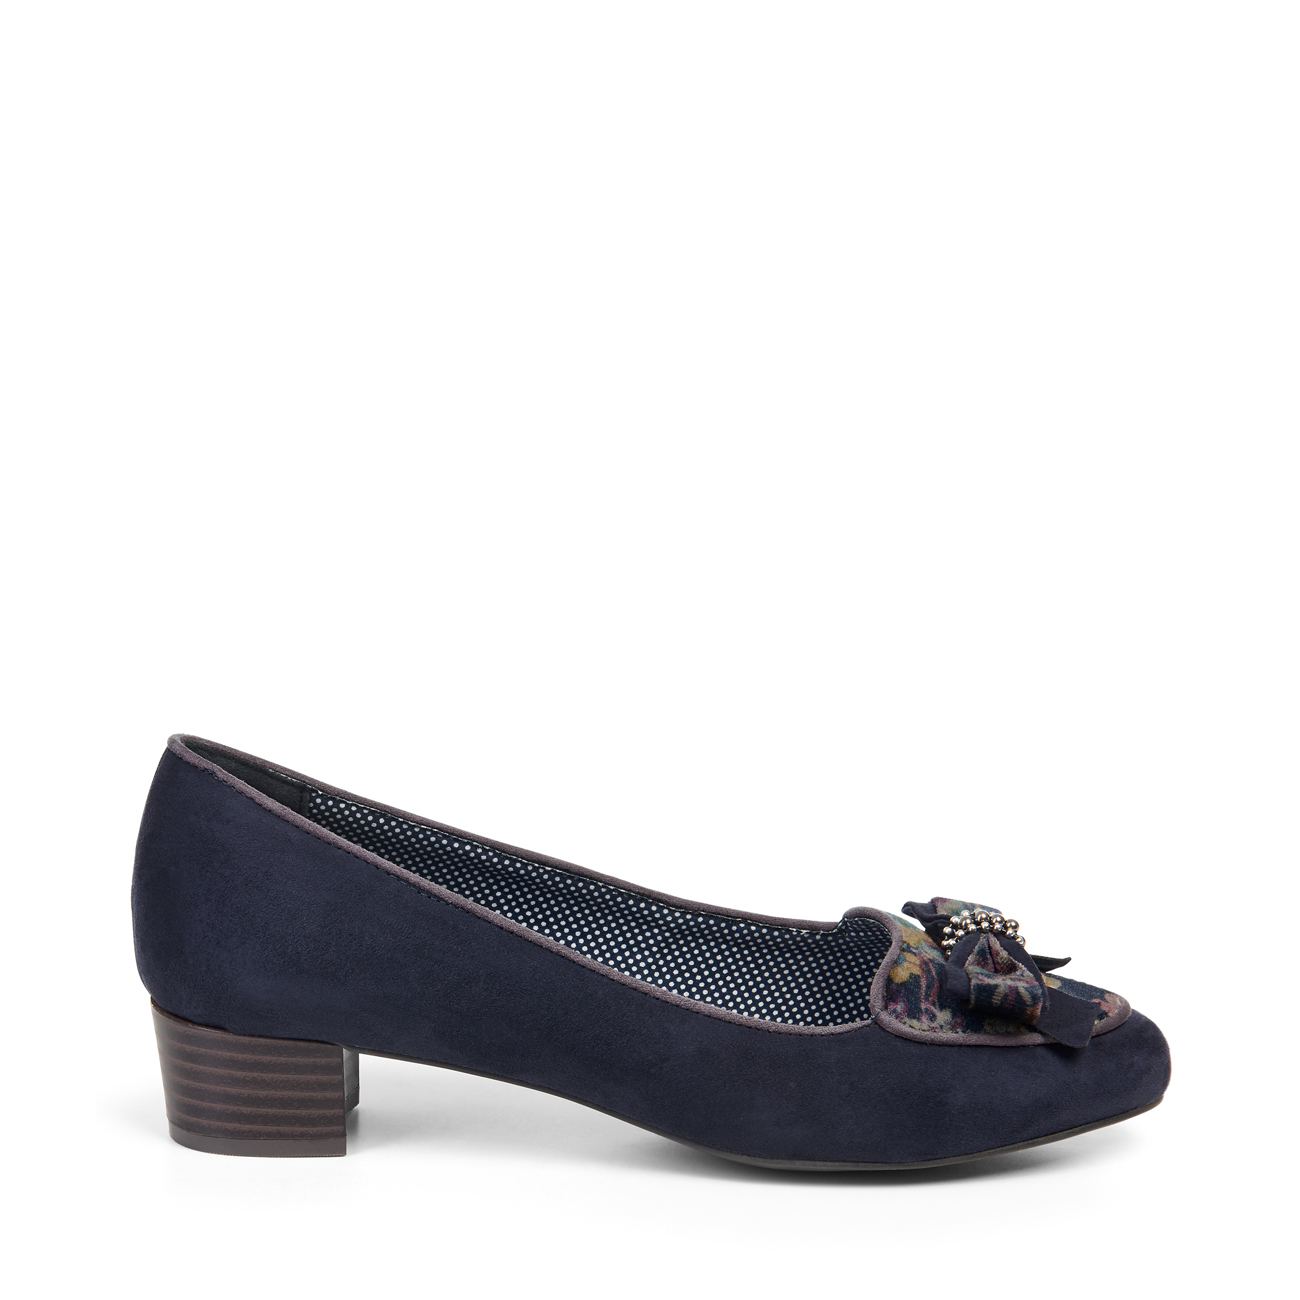 Rieker 53783-14 Navy Leather Leather Navy Slip on Shoes 7b1e2f